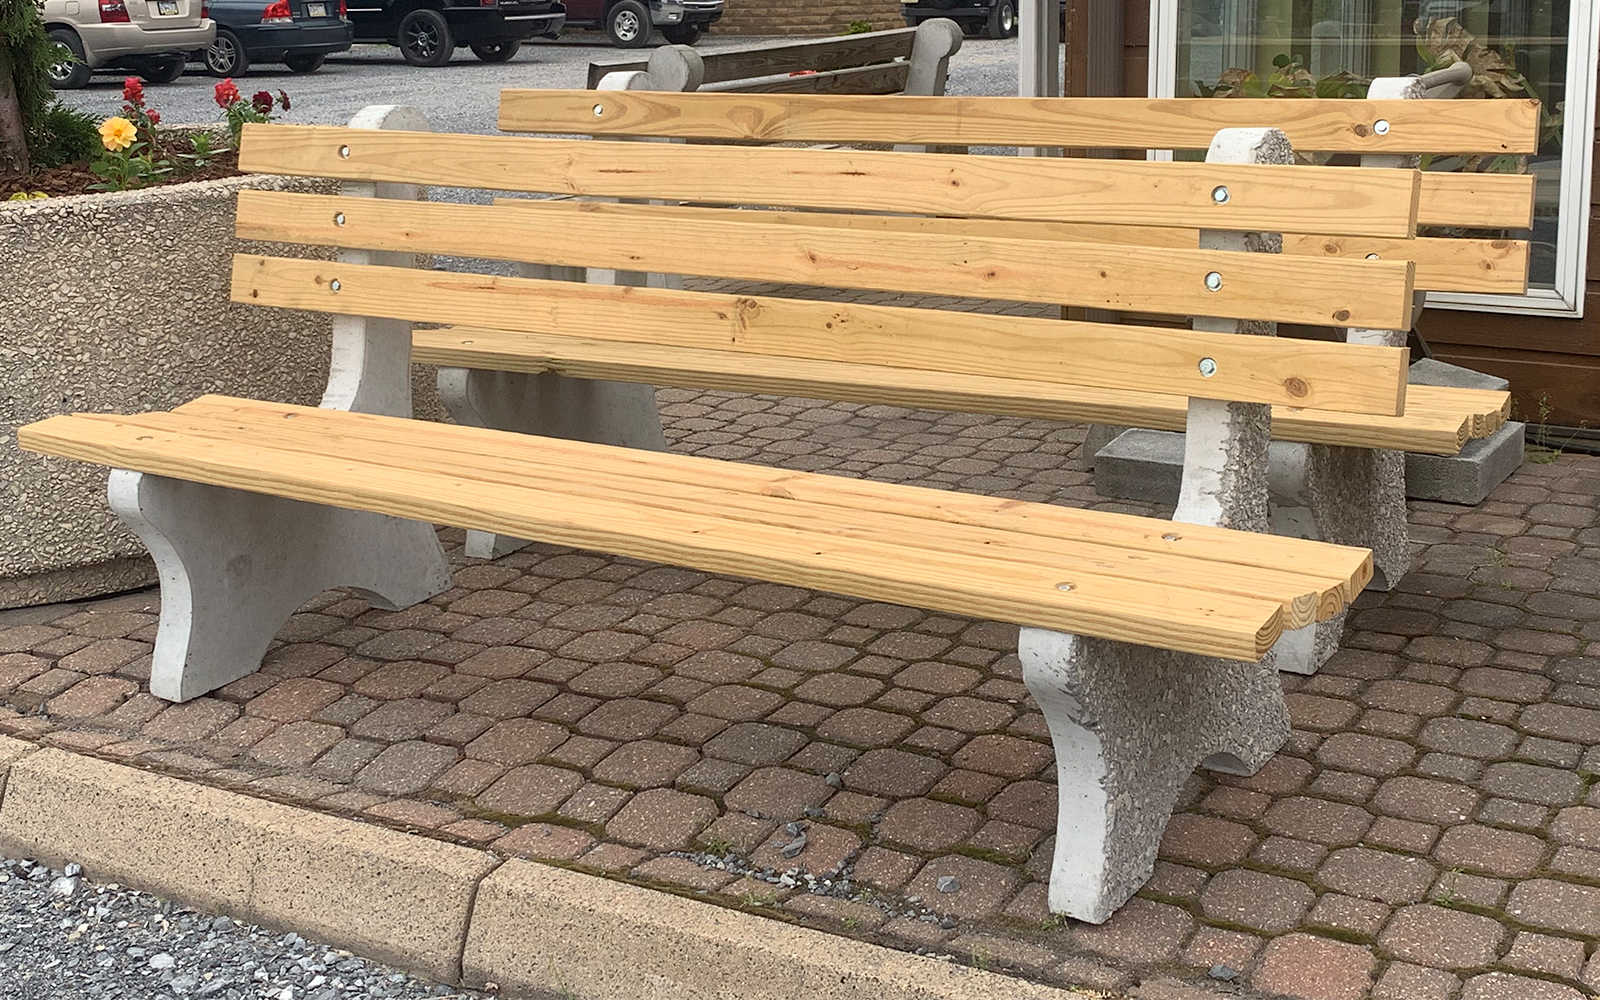 precast-concrete-park-bench-with-wood-seating